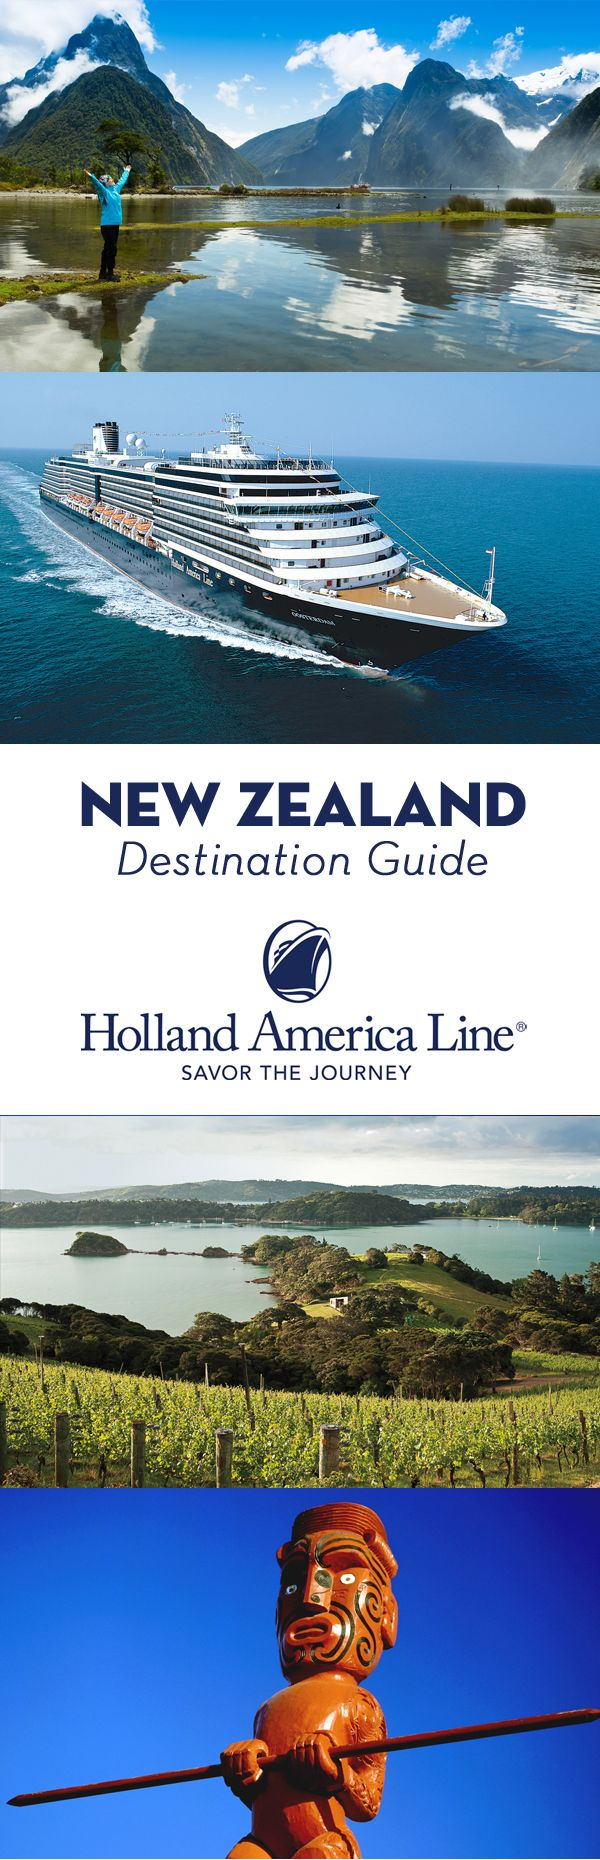 Plan for UNESCO sites. Plan for the vineyards of Marlborough or thriving Maori culture. Plan for relaxation. Whatever you're planning, plan with Holland America Line. Our New Zealand destination guide shows you all the best places to go—and our well-appointed mid-sized ships will take you there in classic style. Only on Holland America Line.